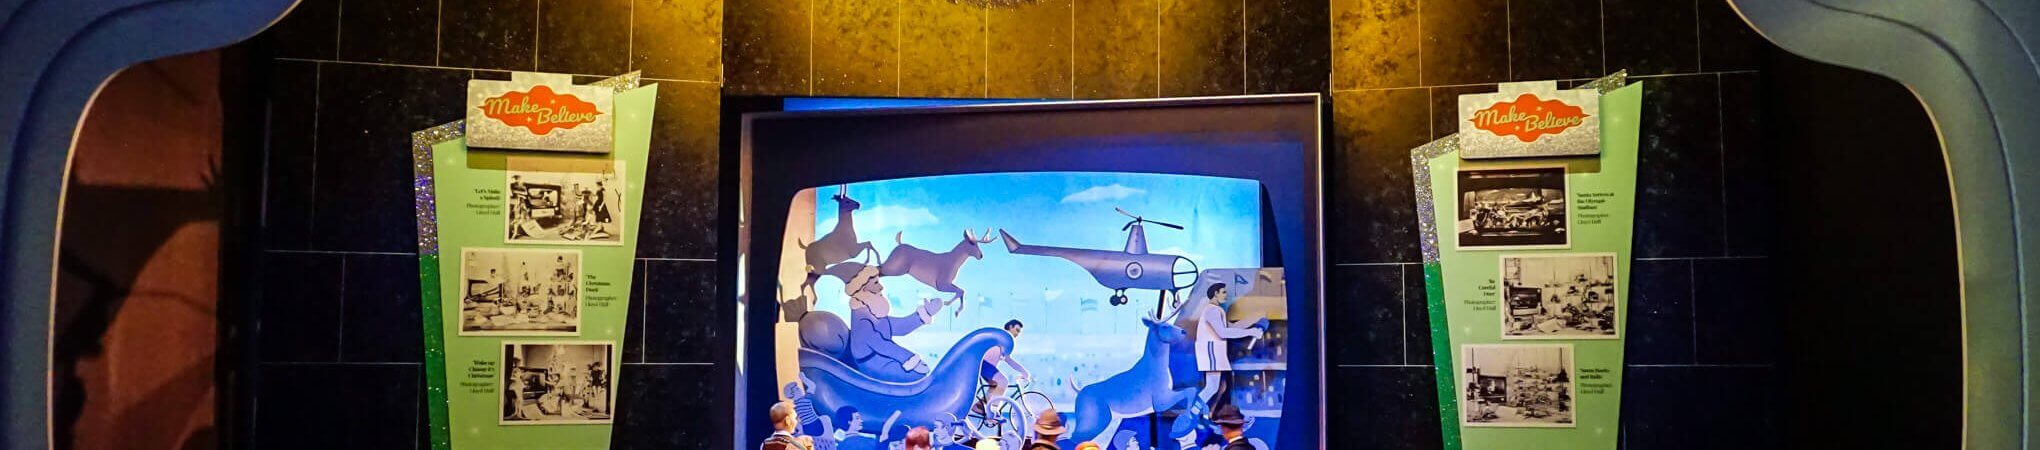 HOT: Make Believe: The Story Of The Myer Christmas Windows, Melbourne Museum, Carlton